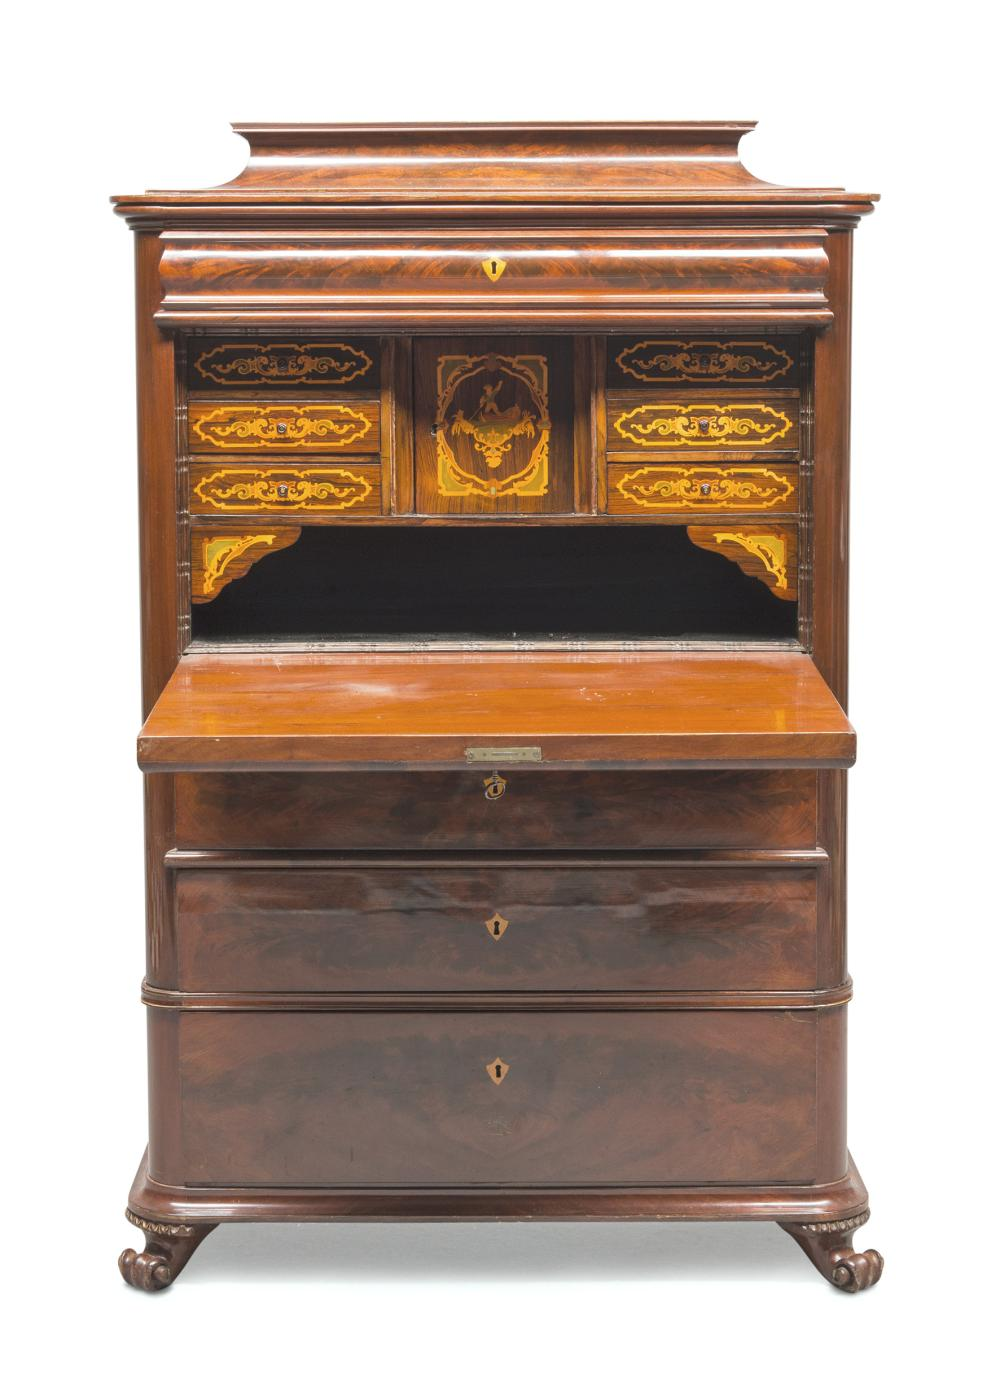 Lot 389: BEAUTIFUL SECRETAIRE IN FEATHER MAHOGANY, PROBABLY GERMANY, PERIOD CHARLES X